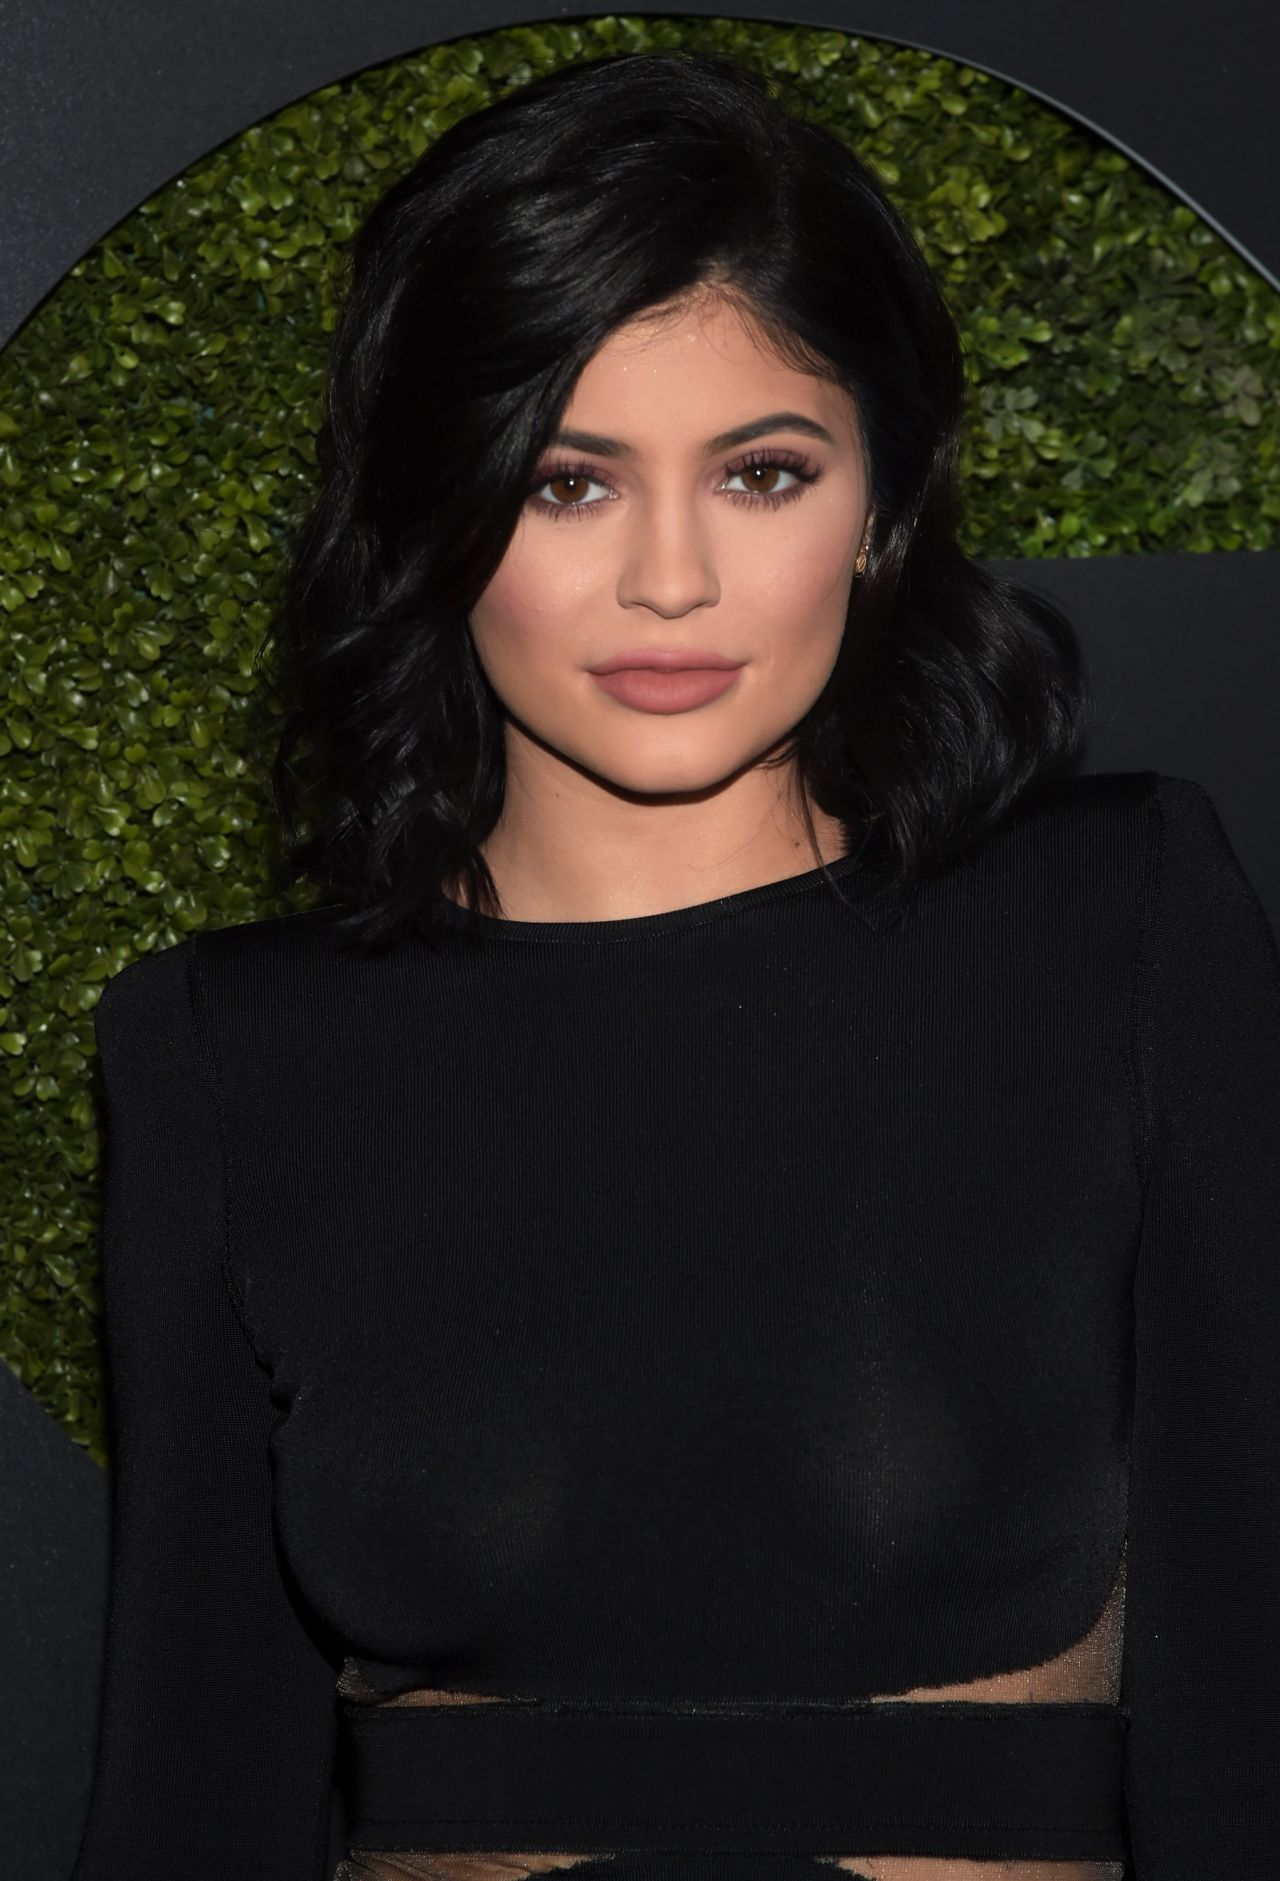 jenner men Kylie jenner opened up to gq about co-parenting with rapper travis scott, and why so many men in the kardashian inner circle unravel so spectacularly.